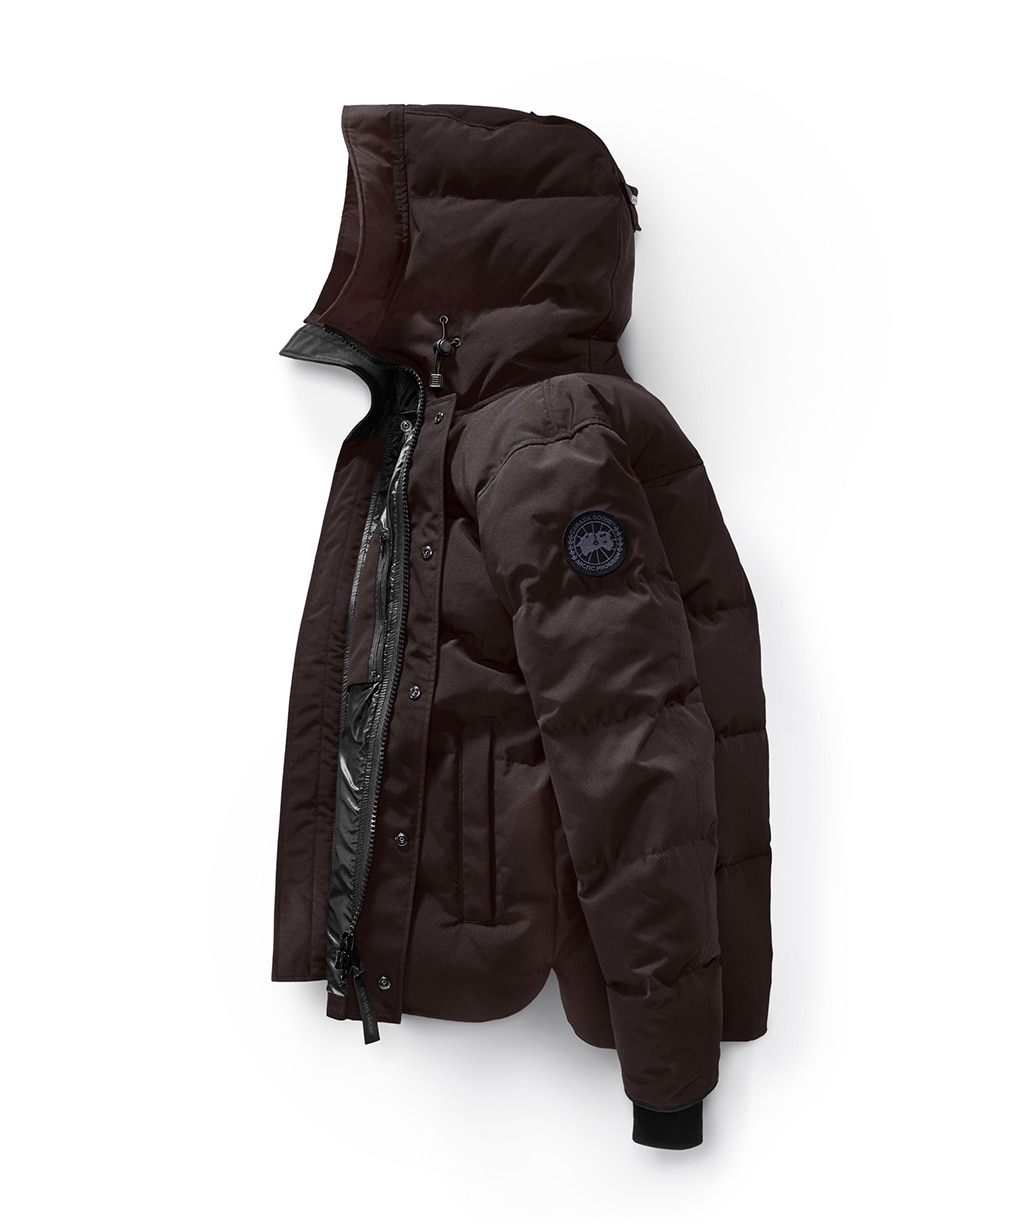 MACMILLIAN PARKA BLACK LABEL